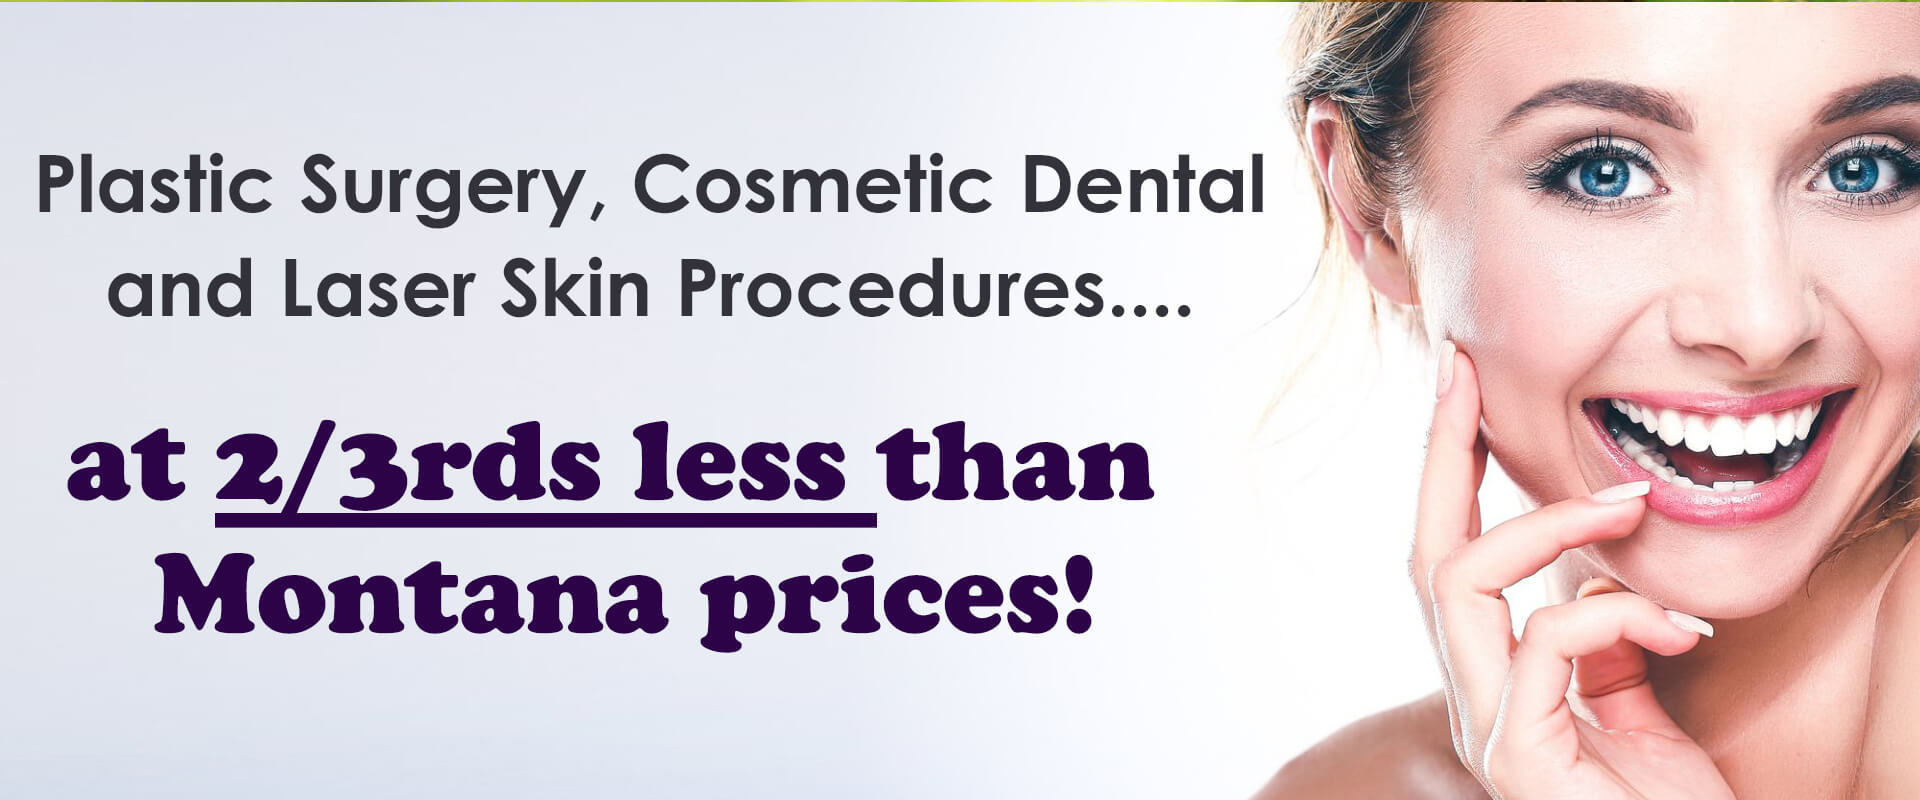 Picture of a happy woman with the low prices for plastic surgery and cosmetic dental in Montana.